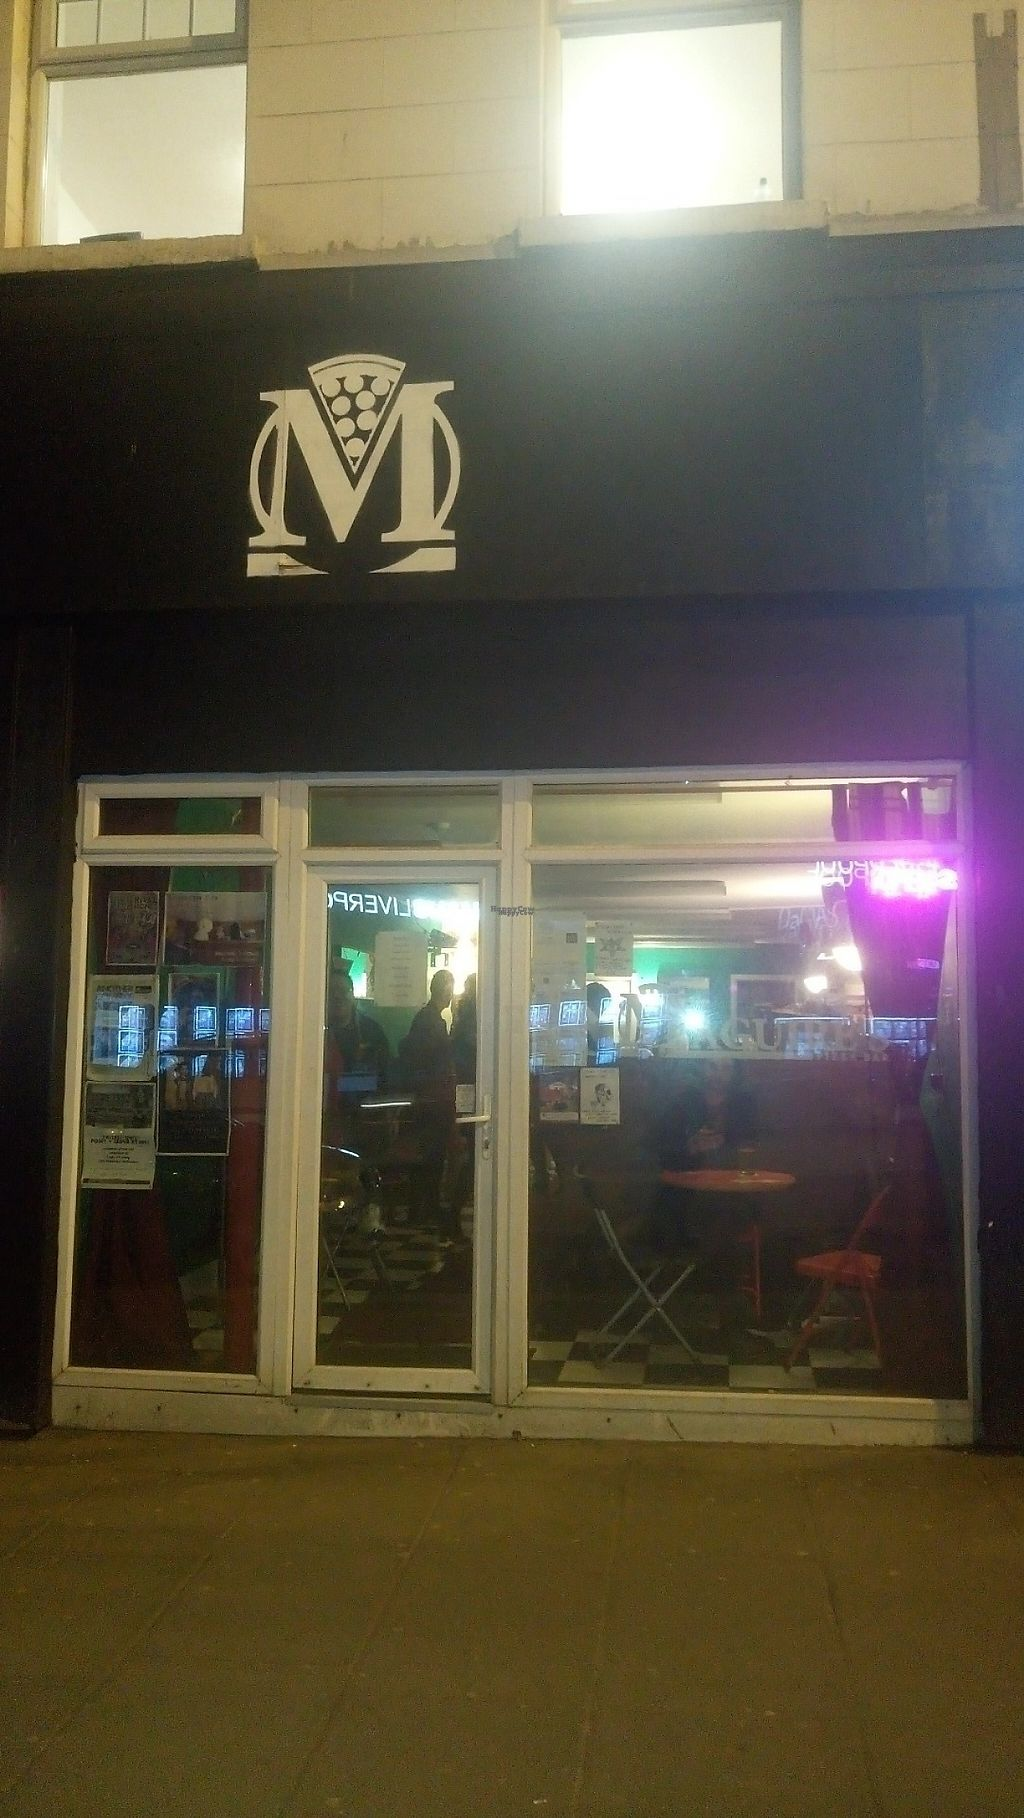 """Photo of Maguire's Pizza Bar  by <a href=""""/members/profile/Amy1274"""">Amy1274</a> <br/>Exterior <br/> February 4, 2017  - <a href='/contact/abuse/image/45354/222466'>Report</a>"""